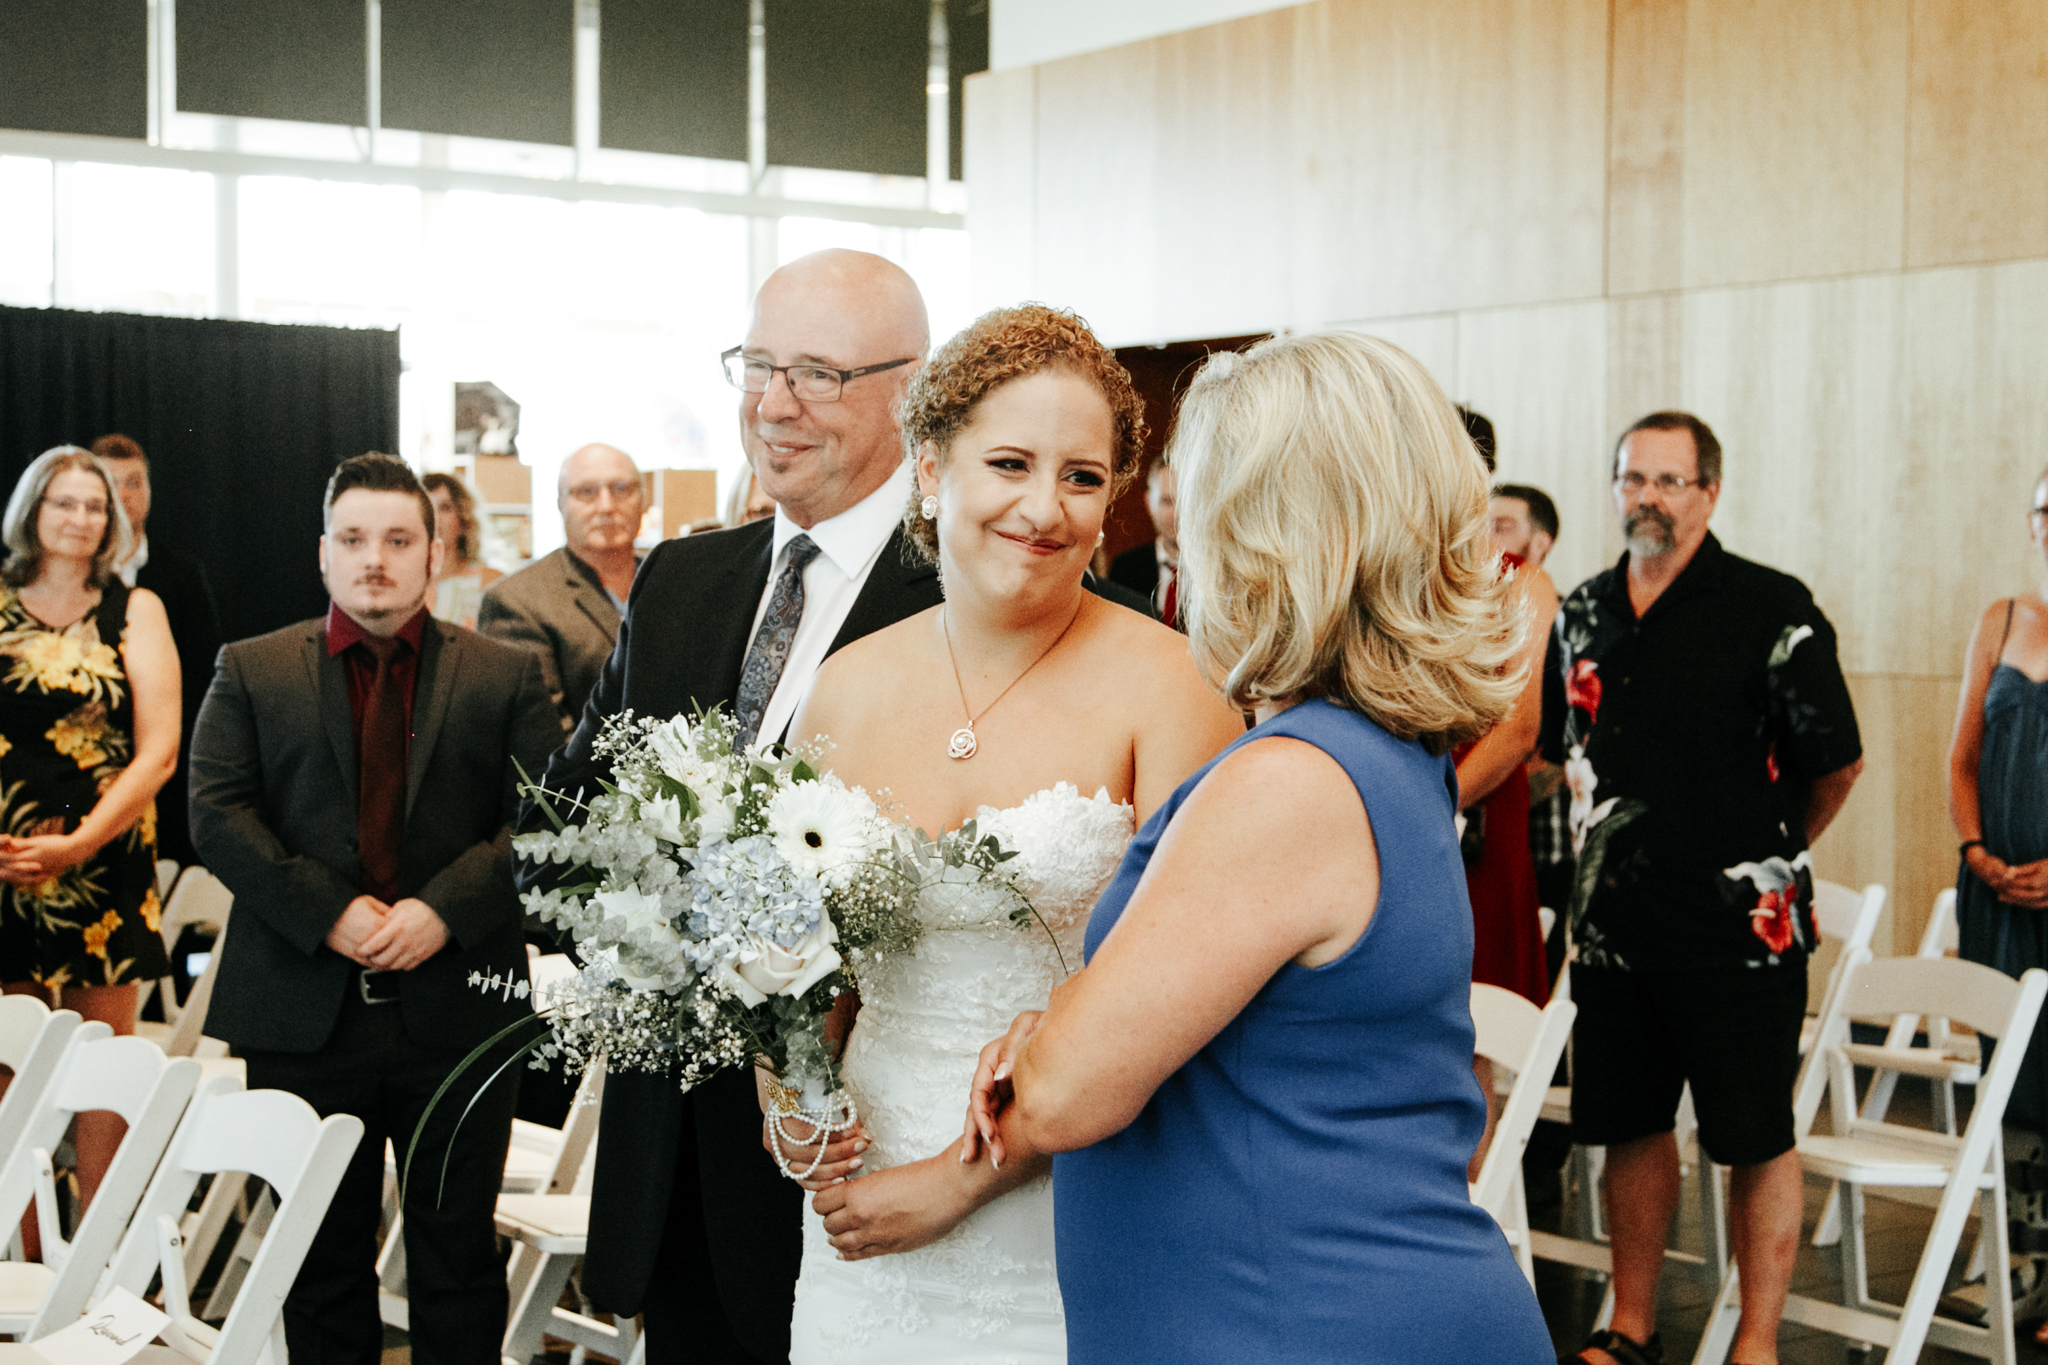 lethbridge-wedding-photographer-love-and-be-loved-photography-trent-danielle-galt-reception-picture-image-photo-45.jpg